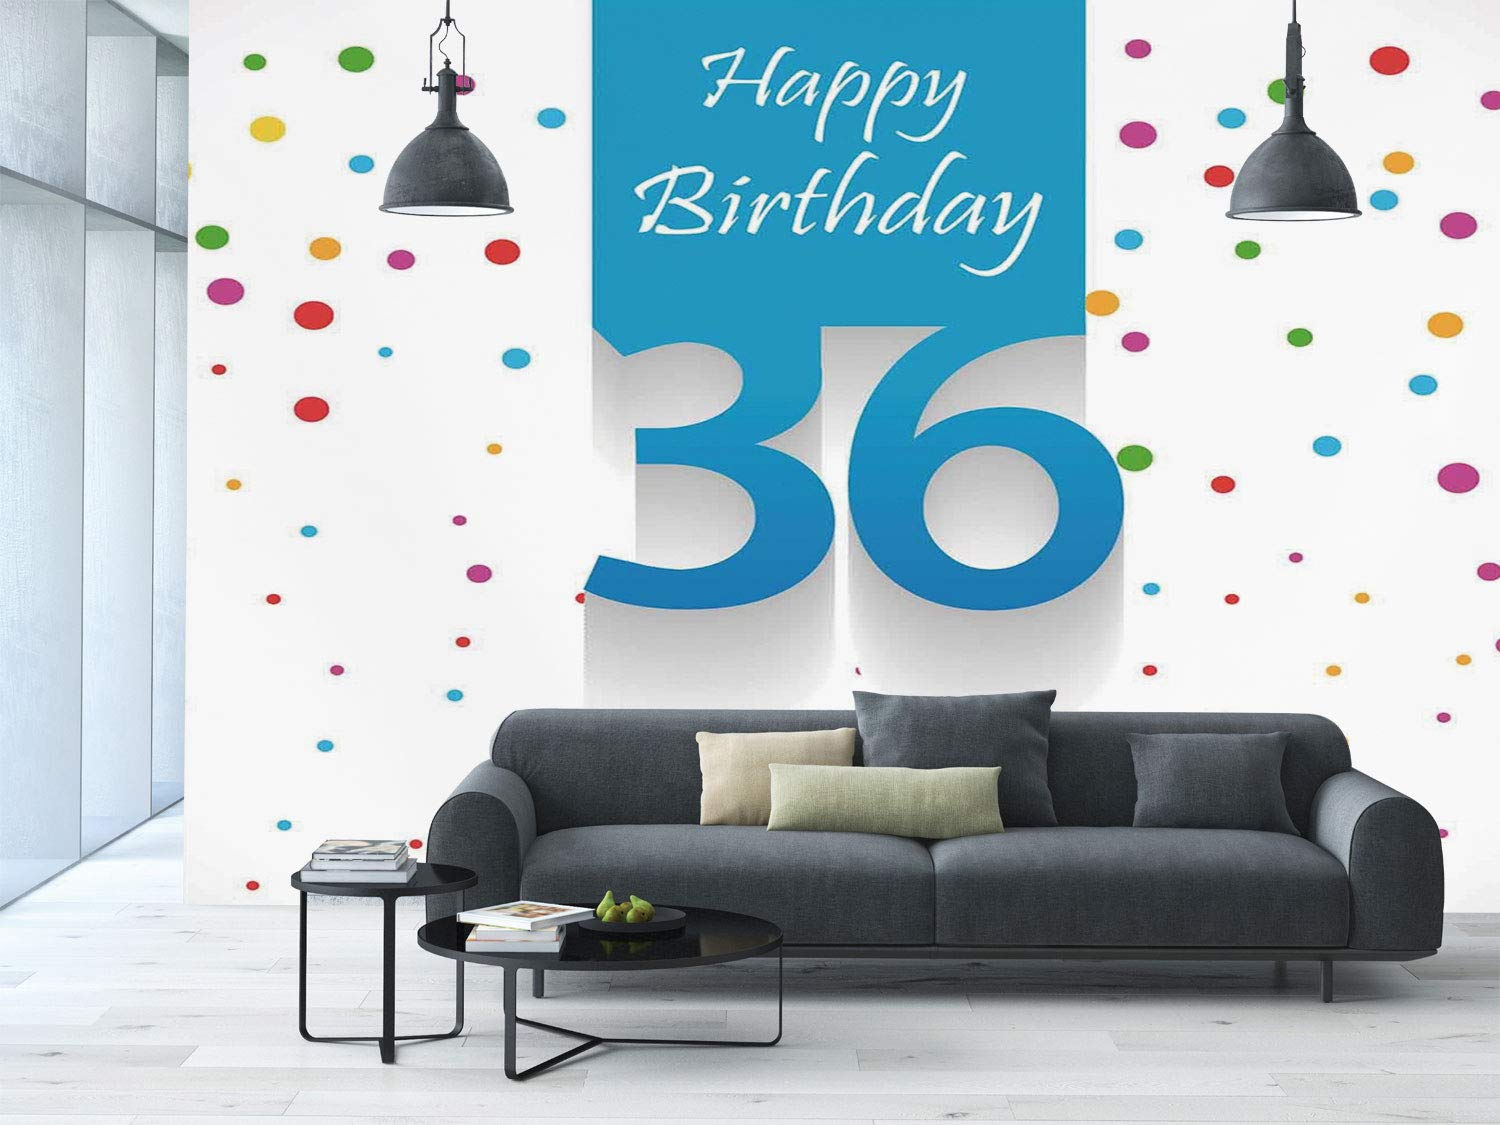 Large Wall Mural Sticker 36th Birthday DecorationsHappy Quote On Blue Backdrop With Colorful Polka DotsMulticolor Self Adhesive Vinyl